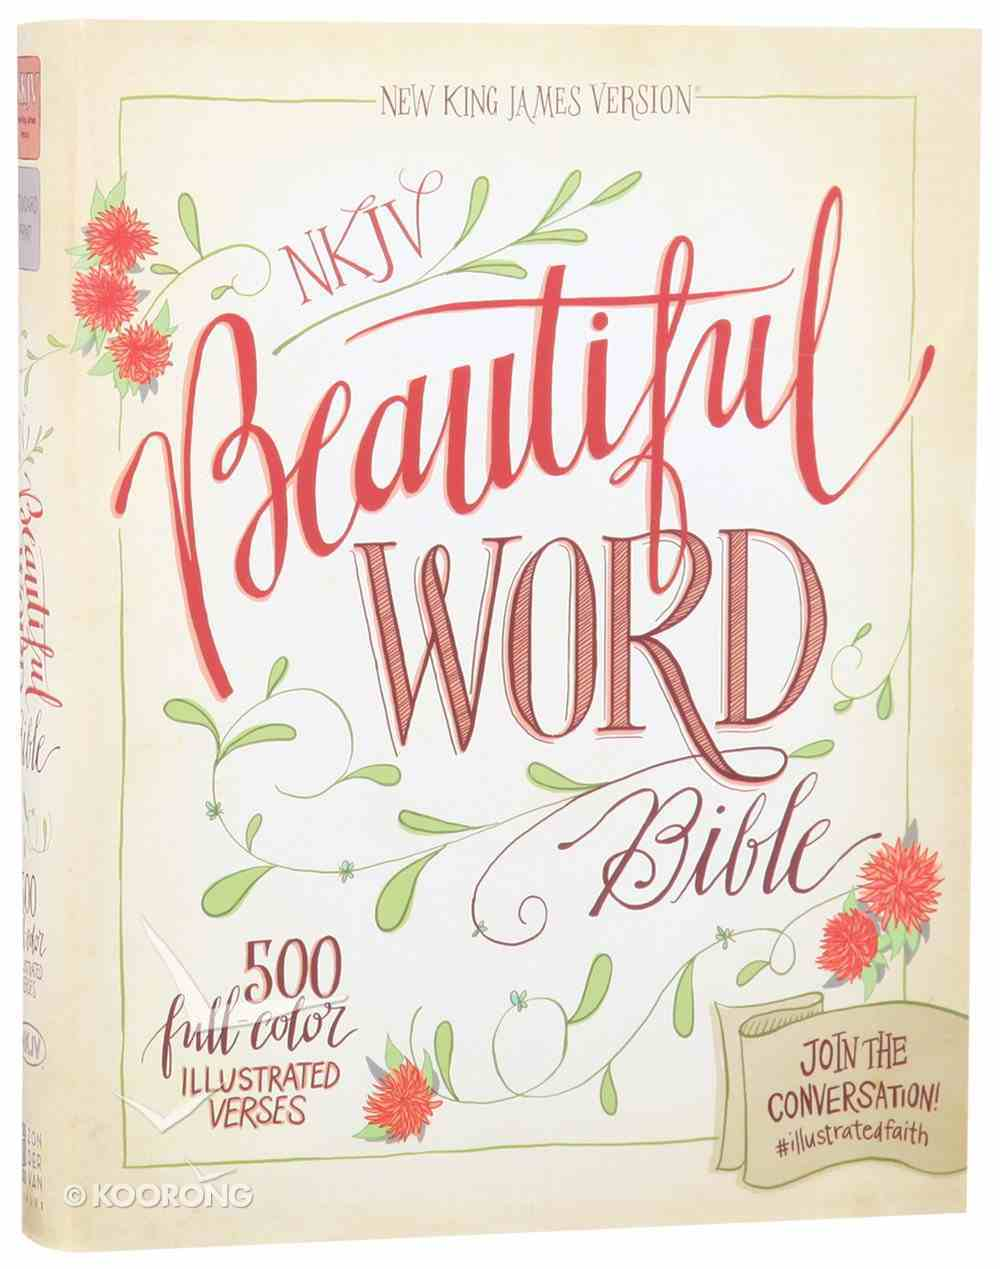 NKJV Beautiful Word Bible (Red Letter Edition) Hardback